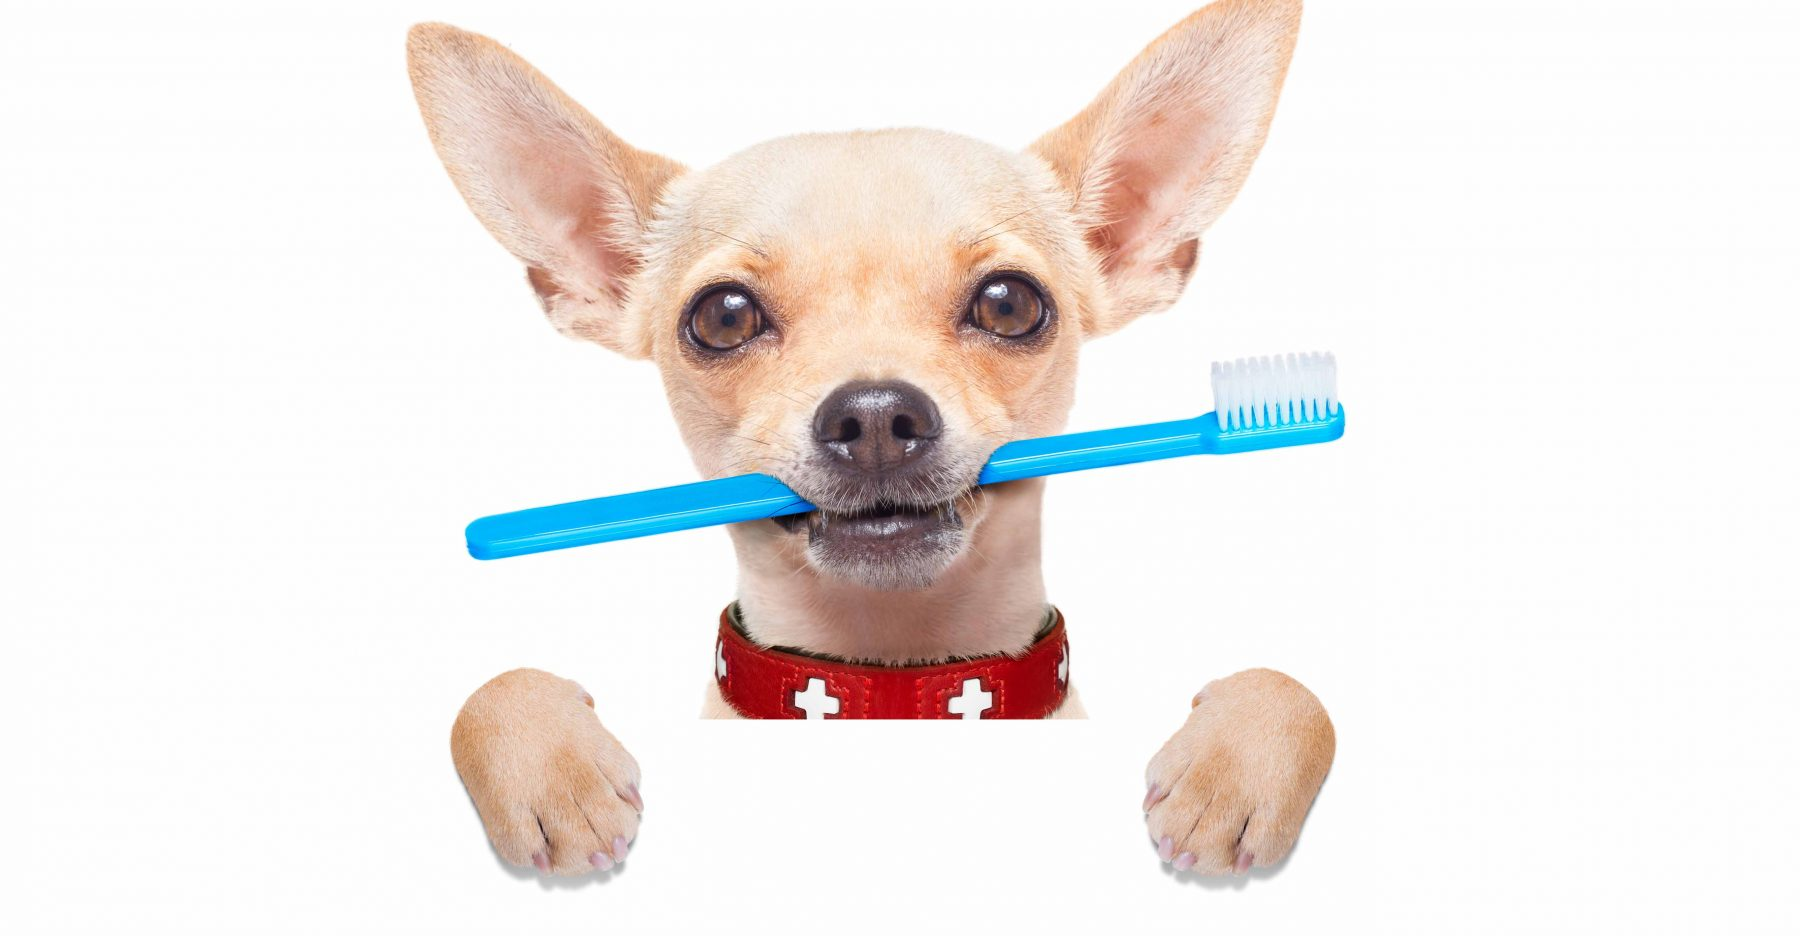 Dog holding a toothbrush in its mouth